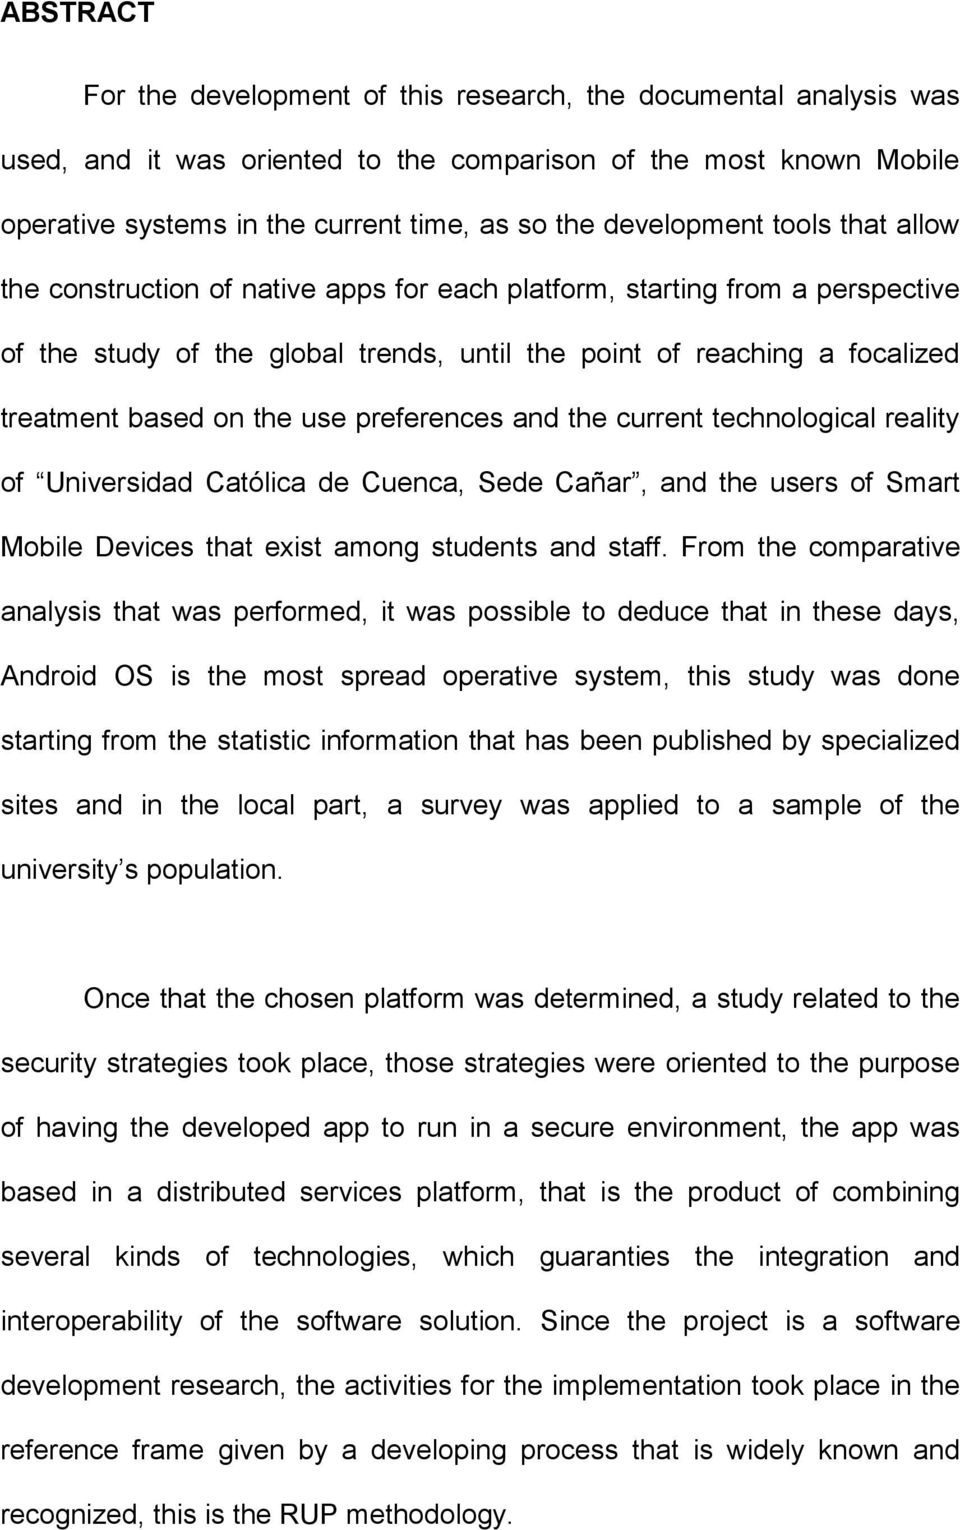 on the use preferences and the current technological reality of Universidad Católica de Cuenca, Sede Cañar, and the users of Smart Mobile Devices that exist among students and staff.